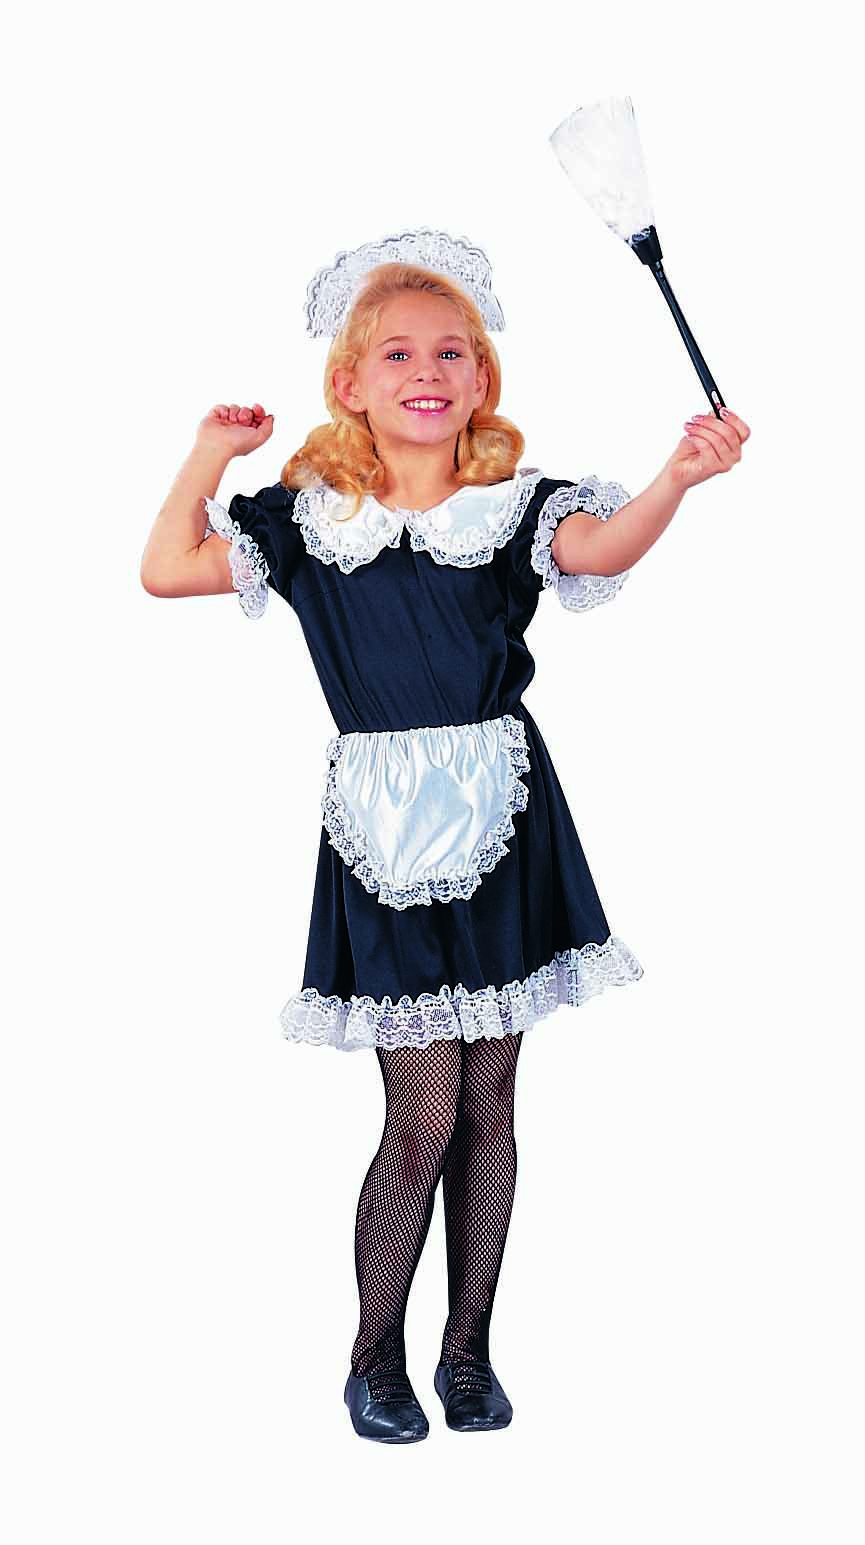 Maid Halloween Costumes For Kids | TimyKids